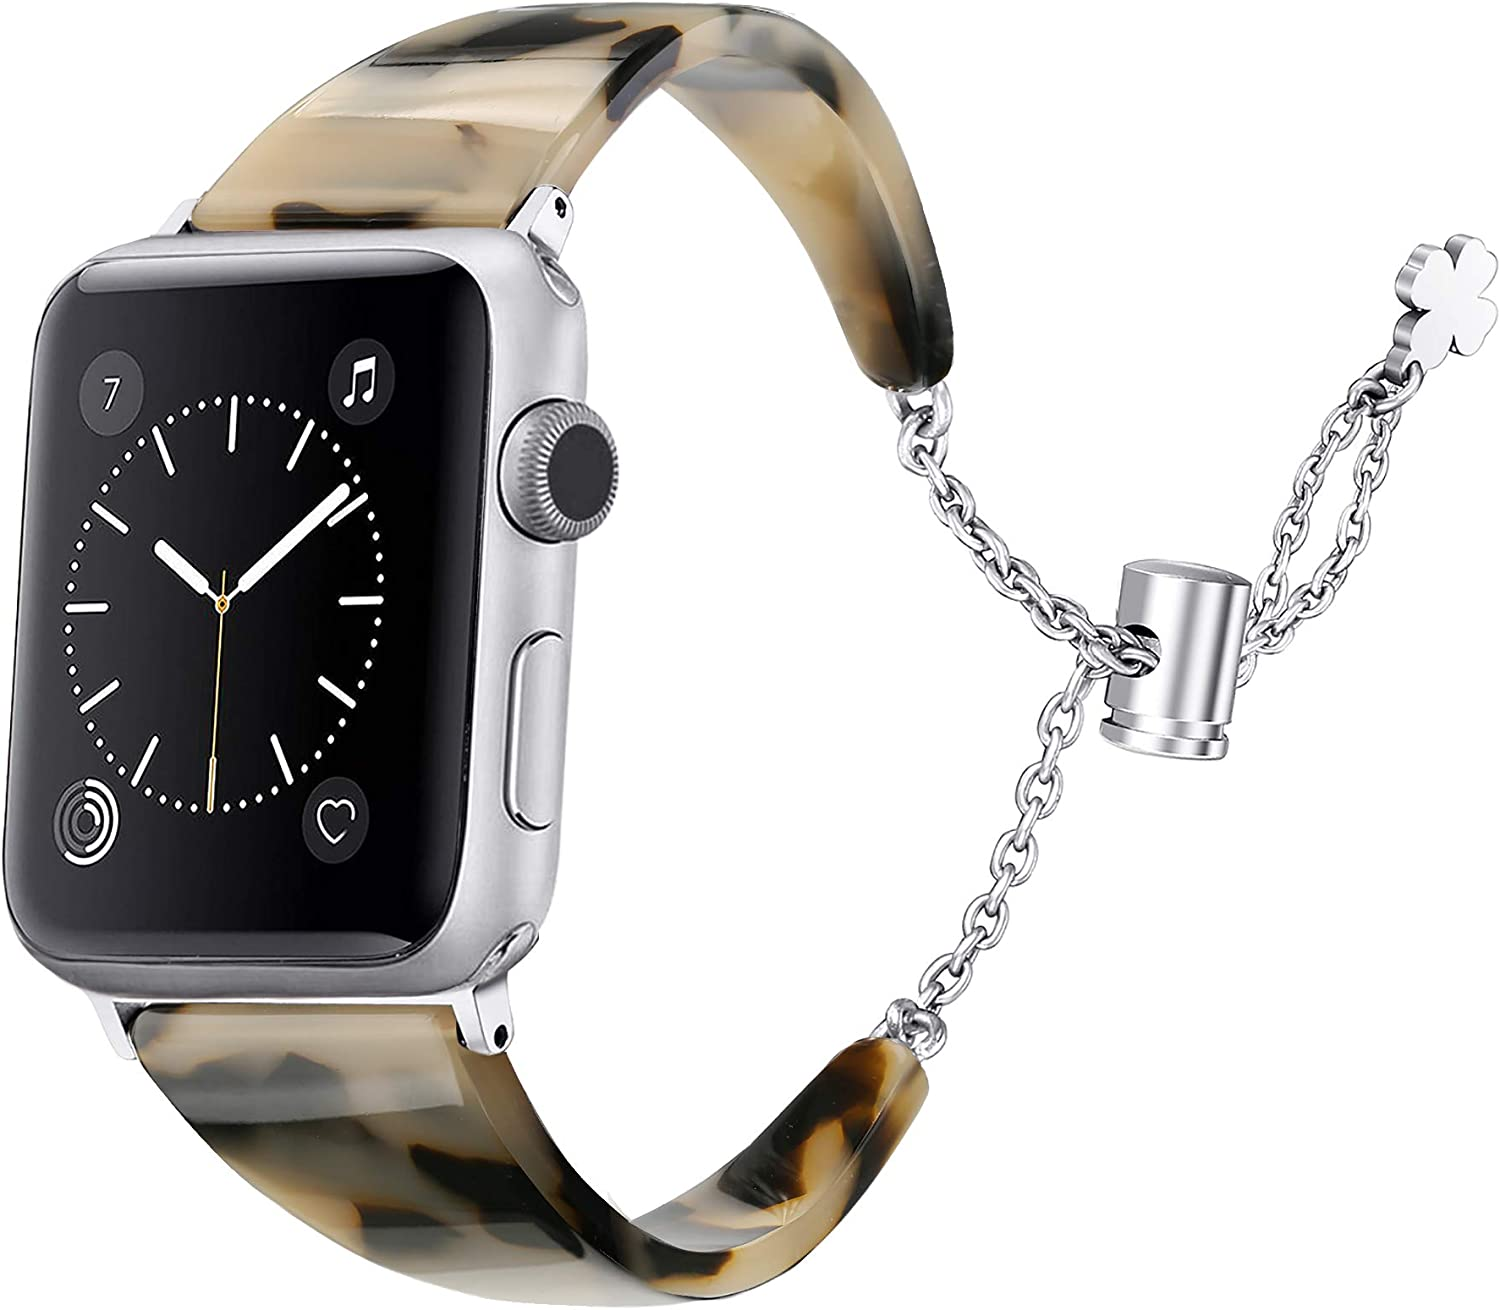 Secbolt Resin Band Compatible with Apple Watch Band 38mm 40mm iWatch Series 5/4/3/2/1, Tough Tortoiseshell-Tone Waterproof Stainless Steel Chains Wristband Dressy Bracelet Accessories Women